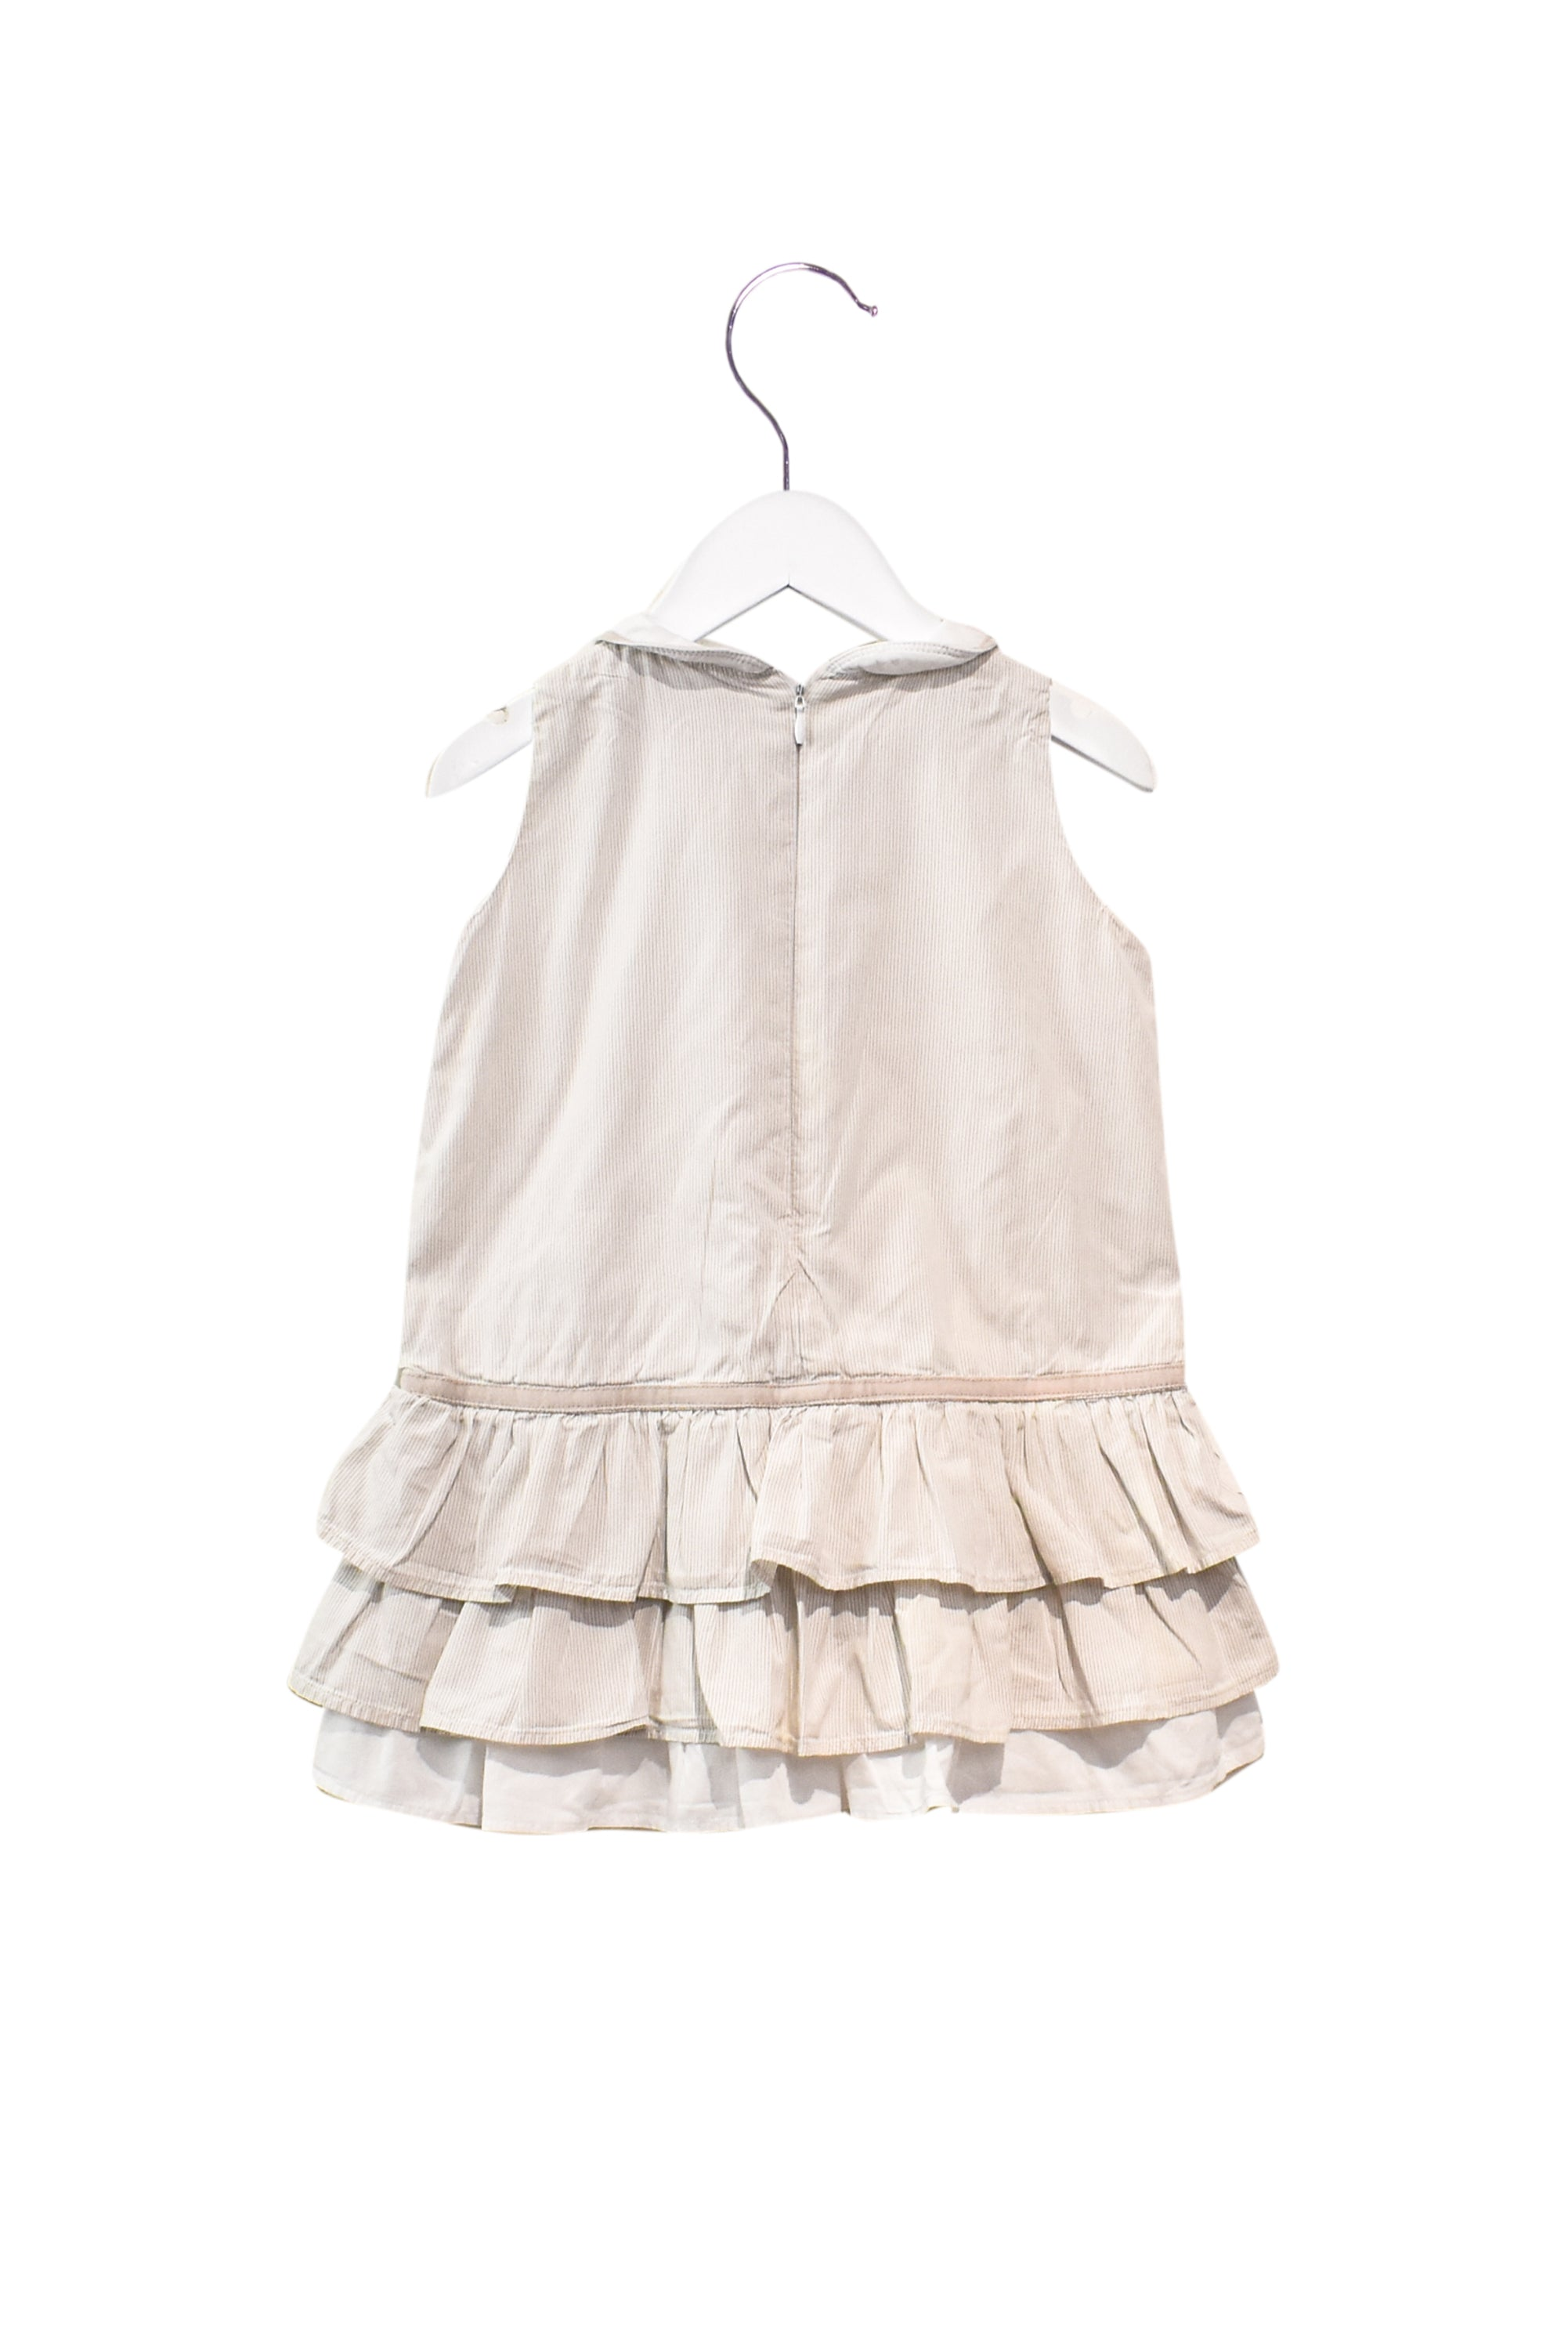 10028222 Chateau de Sable Baby~Dress 24M at Retykle